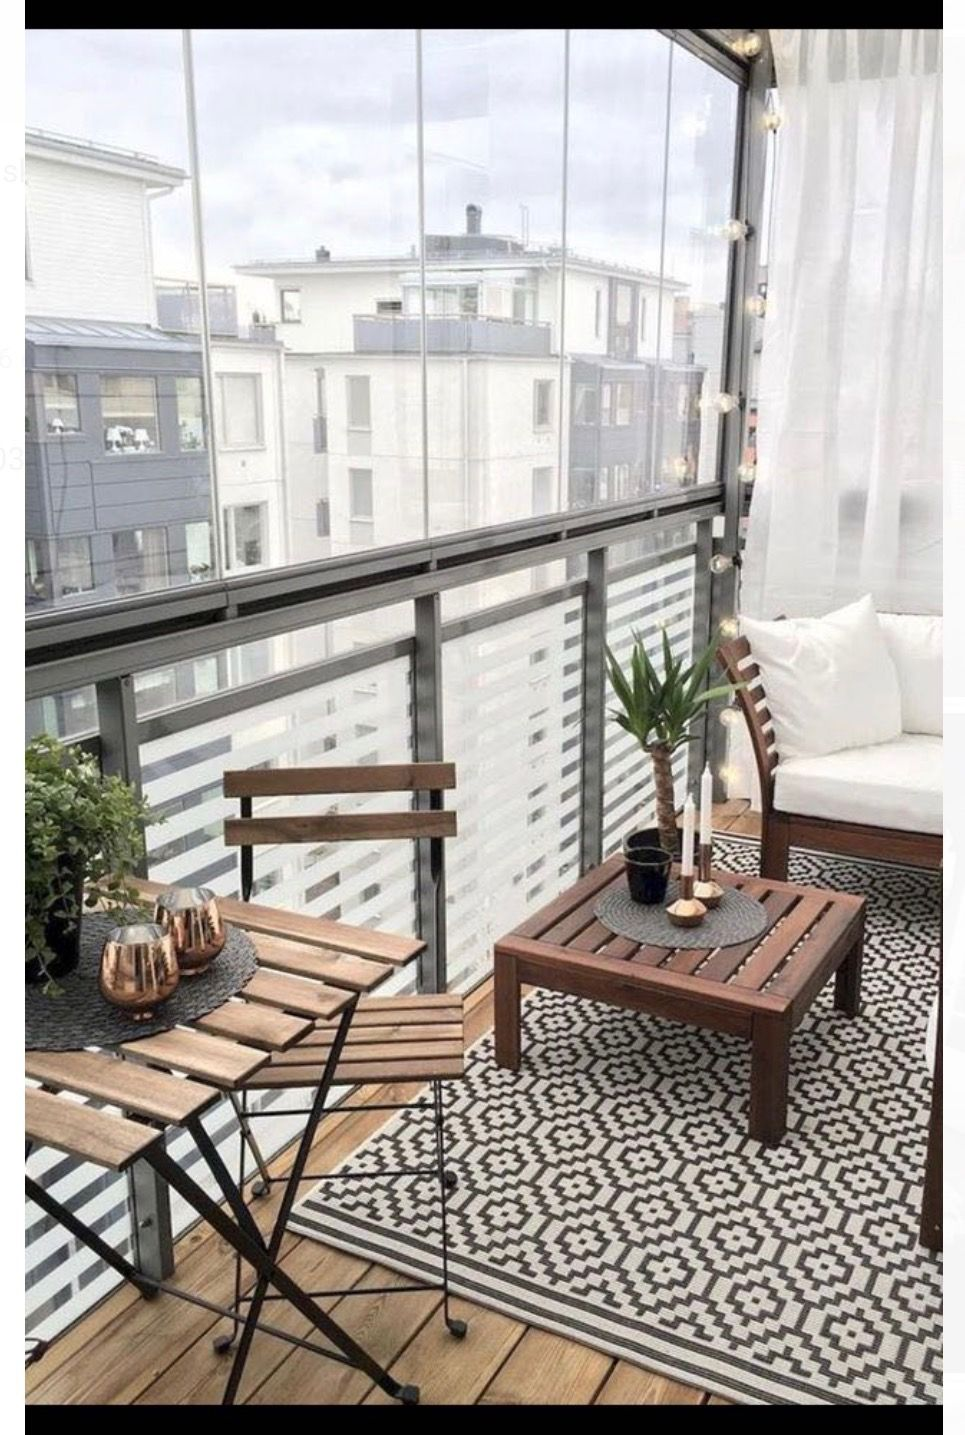 Pin By Ajeet Kaur Khalsa On Home Sweet Home Pinterest Balcon